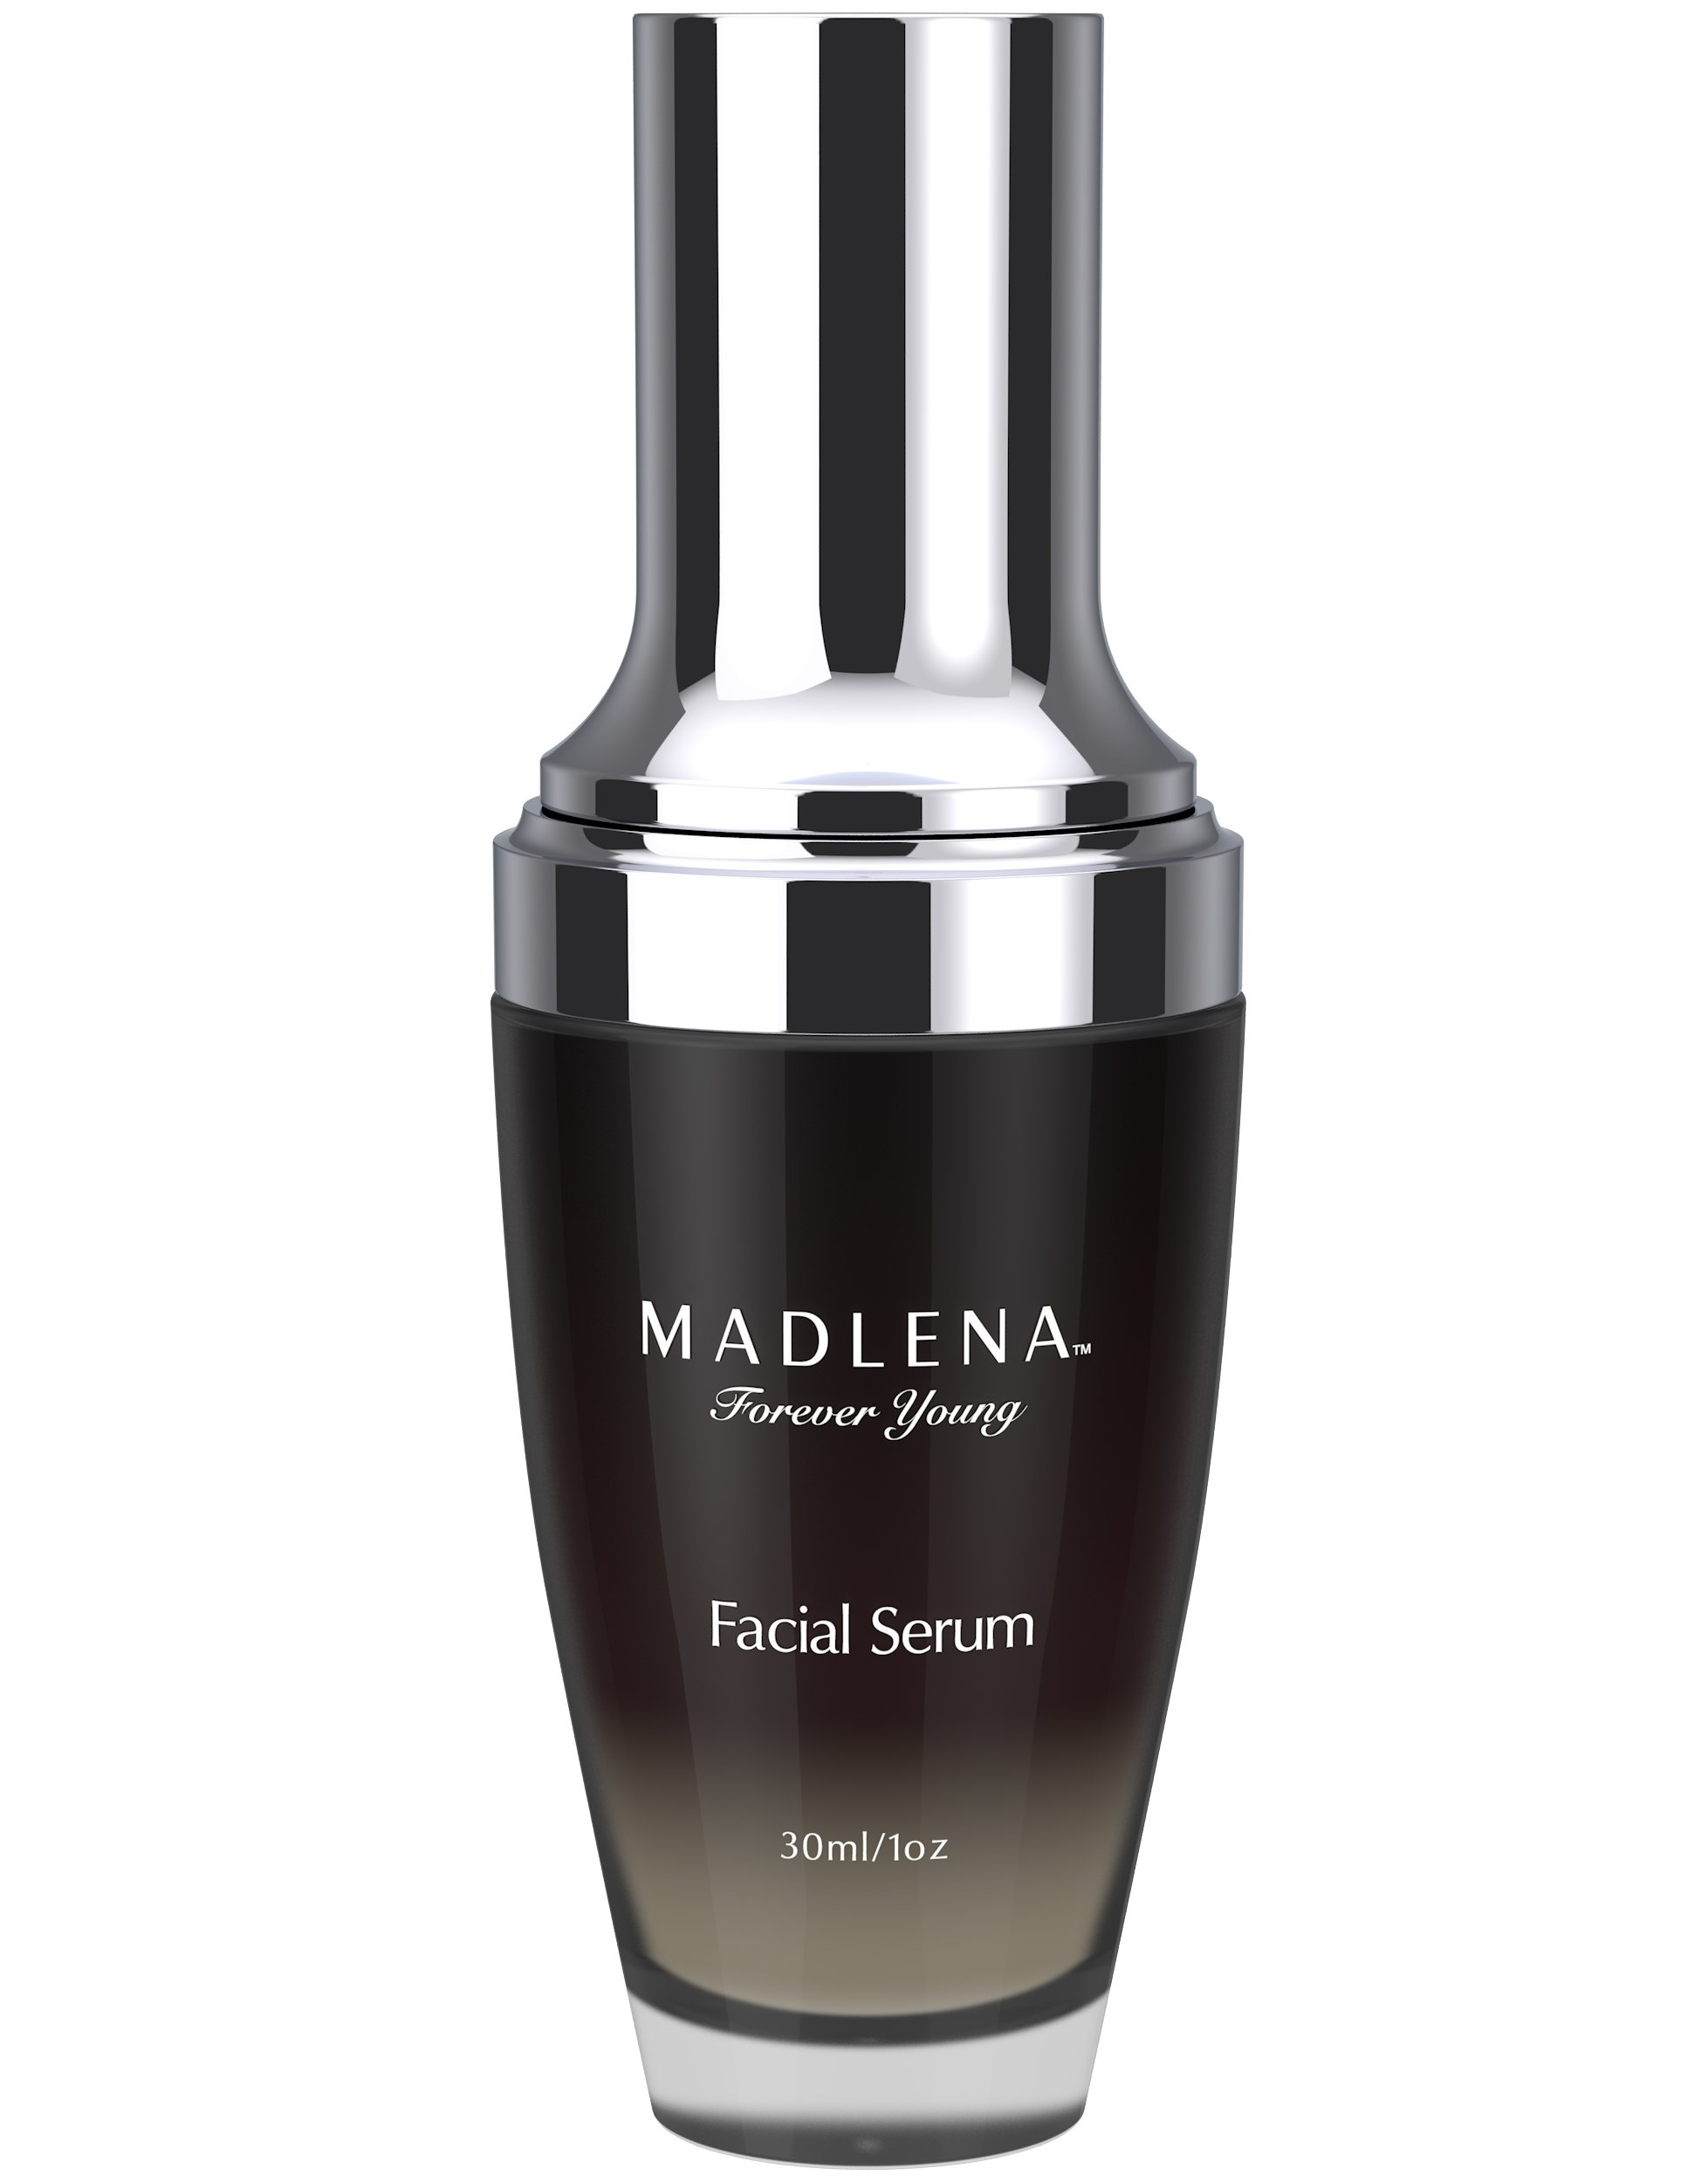 Madlena Advanced Anti-Aging Face & Neck Serum for Women - Powerful Anti-Wrinkle Beauty Care - Fade Lines, Repair Blemishes, Restore Skin Tone and Boost Cell Regeneration